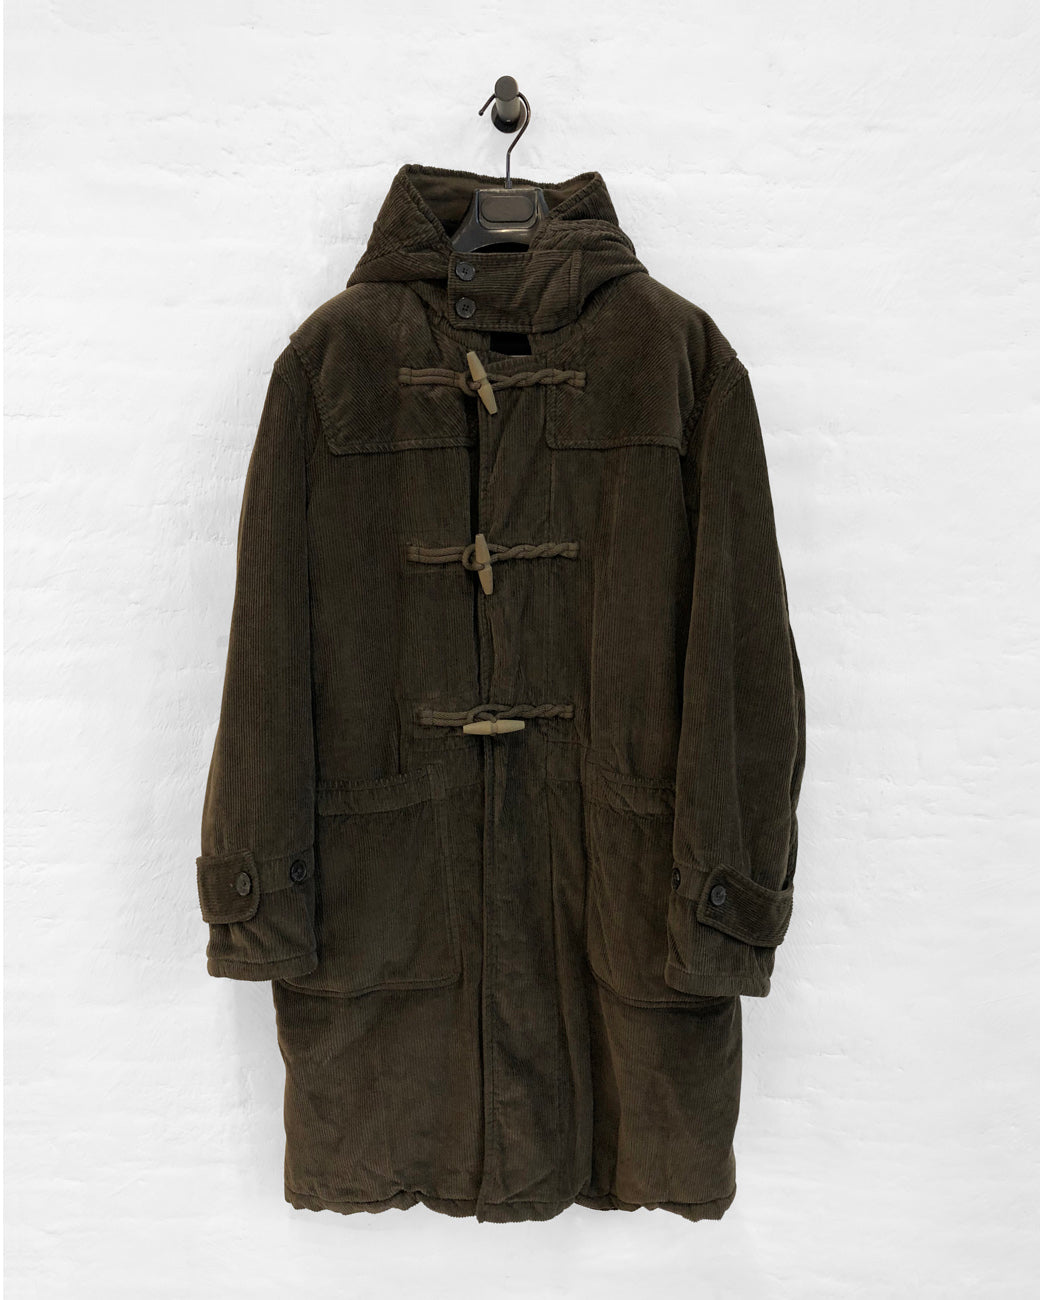 Toggle Coat - Olive Drab